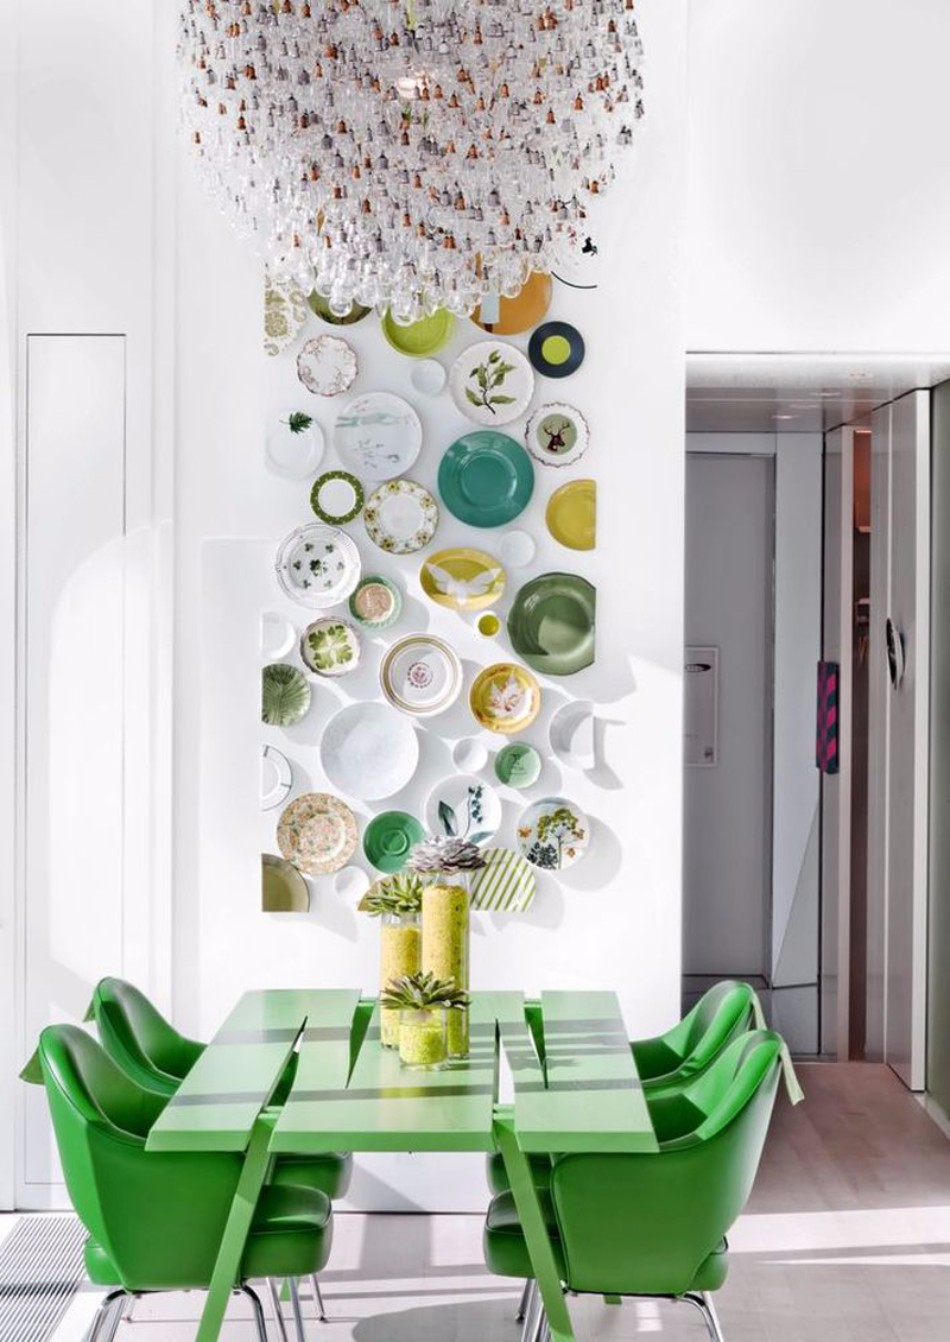 COLORED TABLES: GREENERY  design trends Dining Table Design Trends For This Fall/Winter Dining Table Design Trends For This FallWinter 9